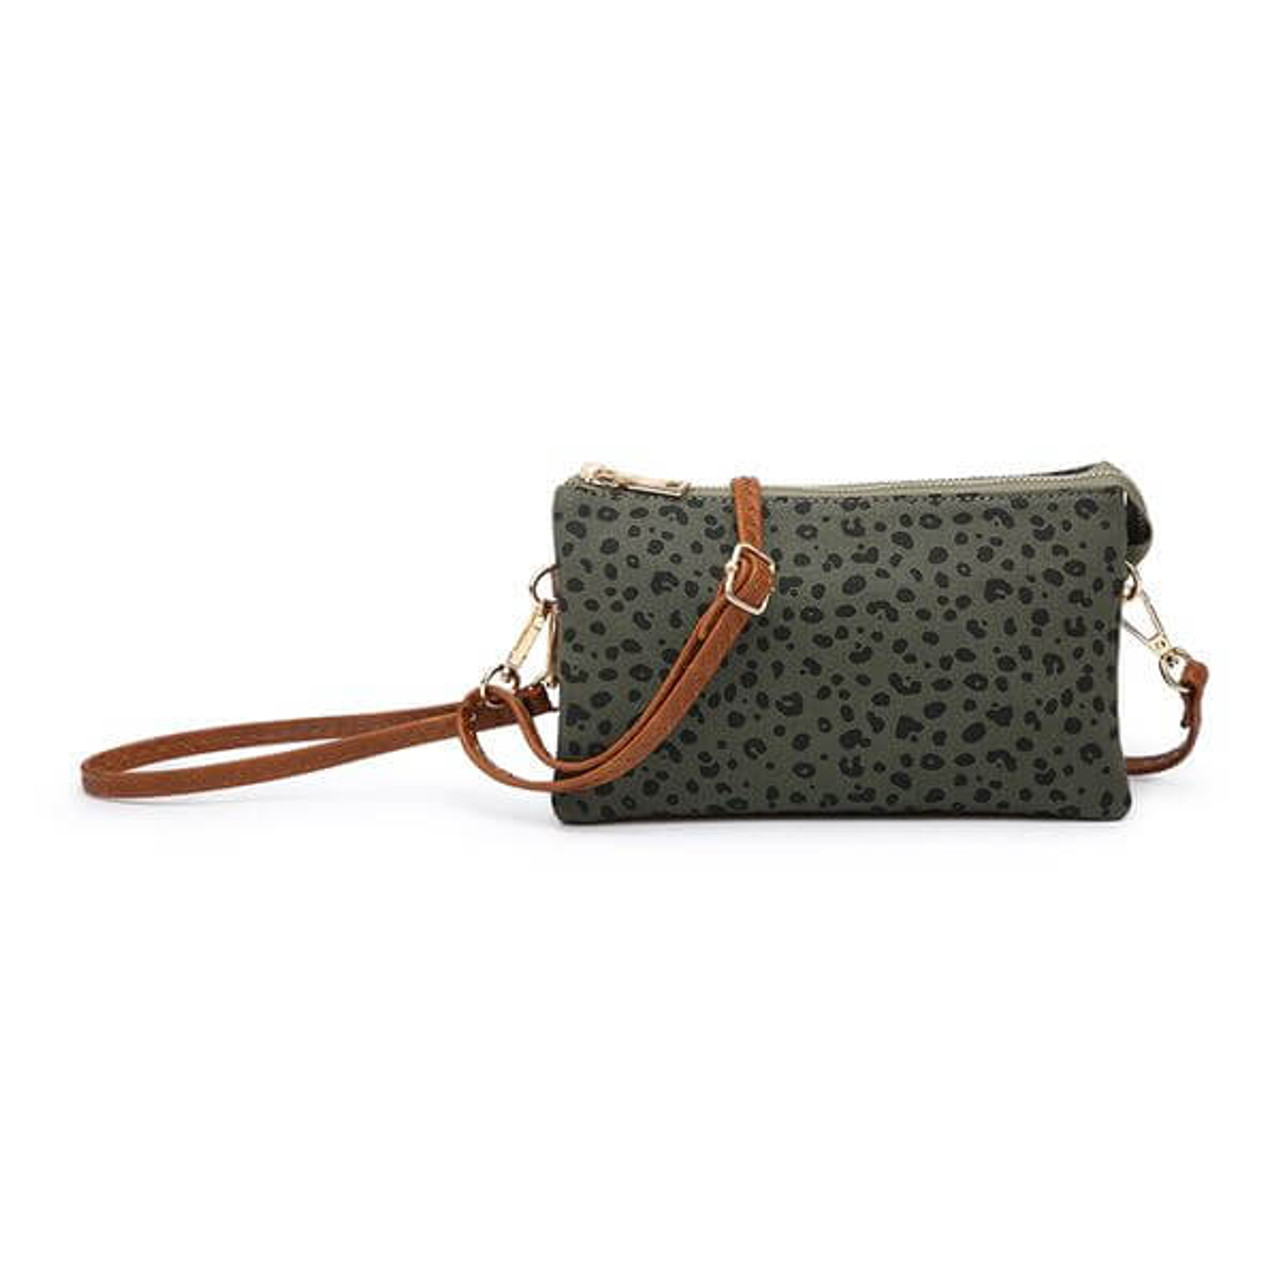 Riley hunter green cheetah canvas Wristlet and adjustable crossbody strap included. Three separate interior compartments with six credit card slots. Top zipper closure.